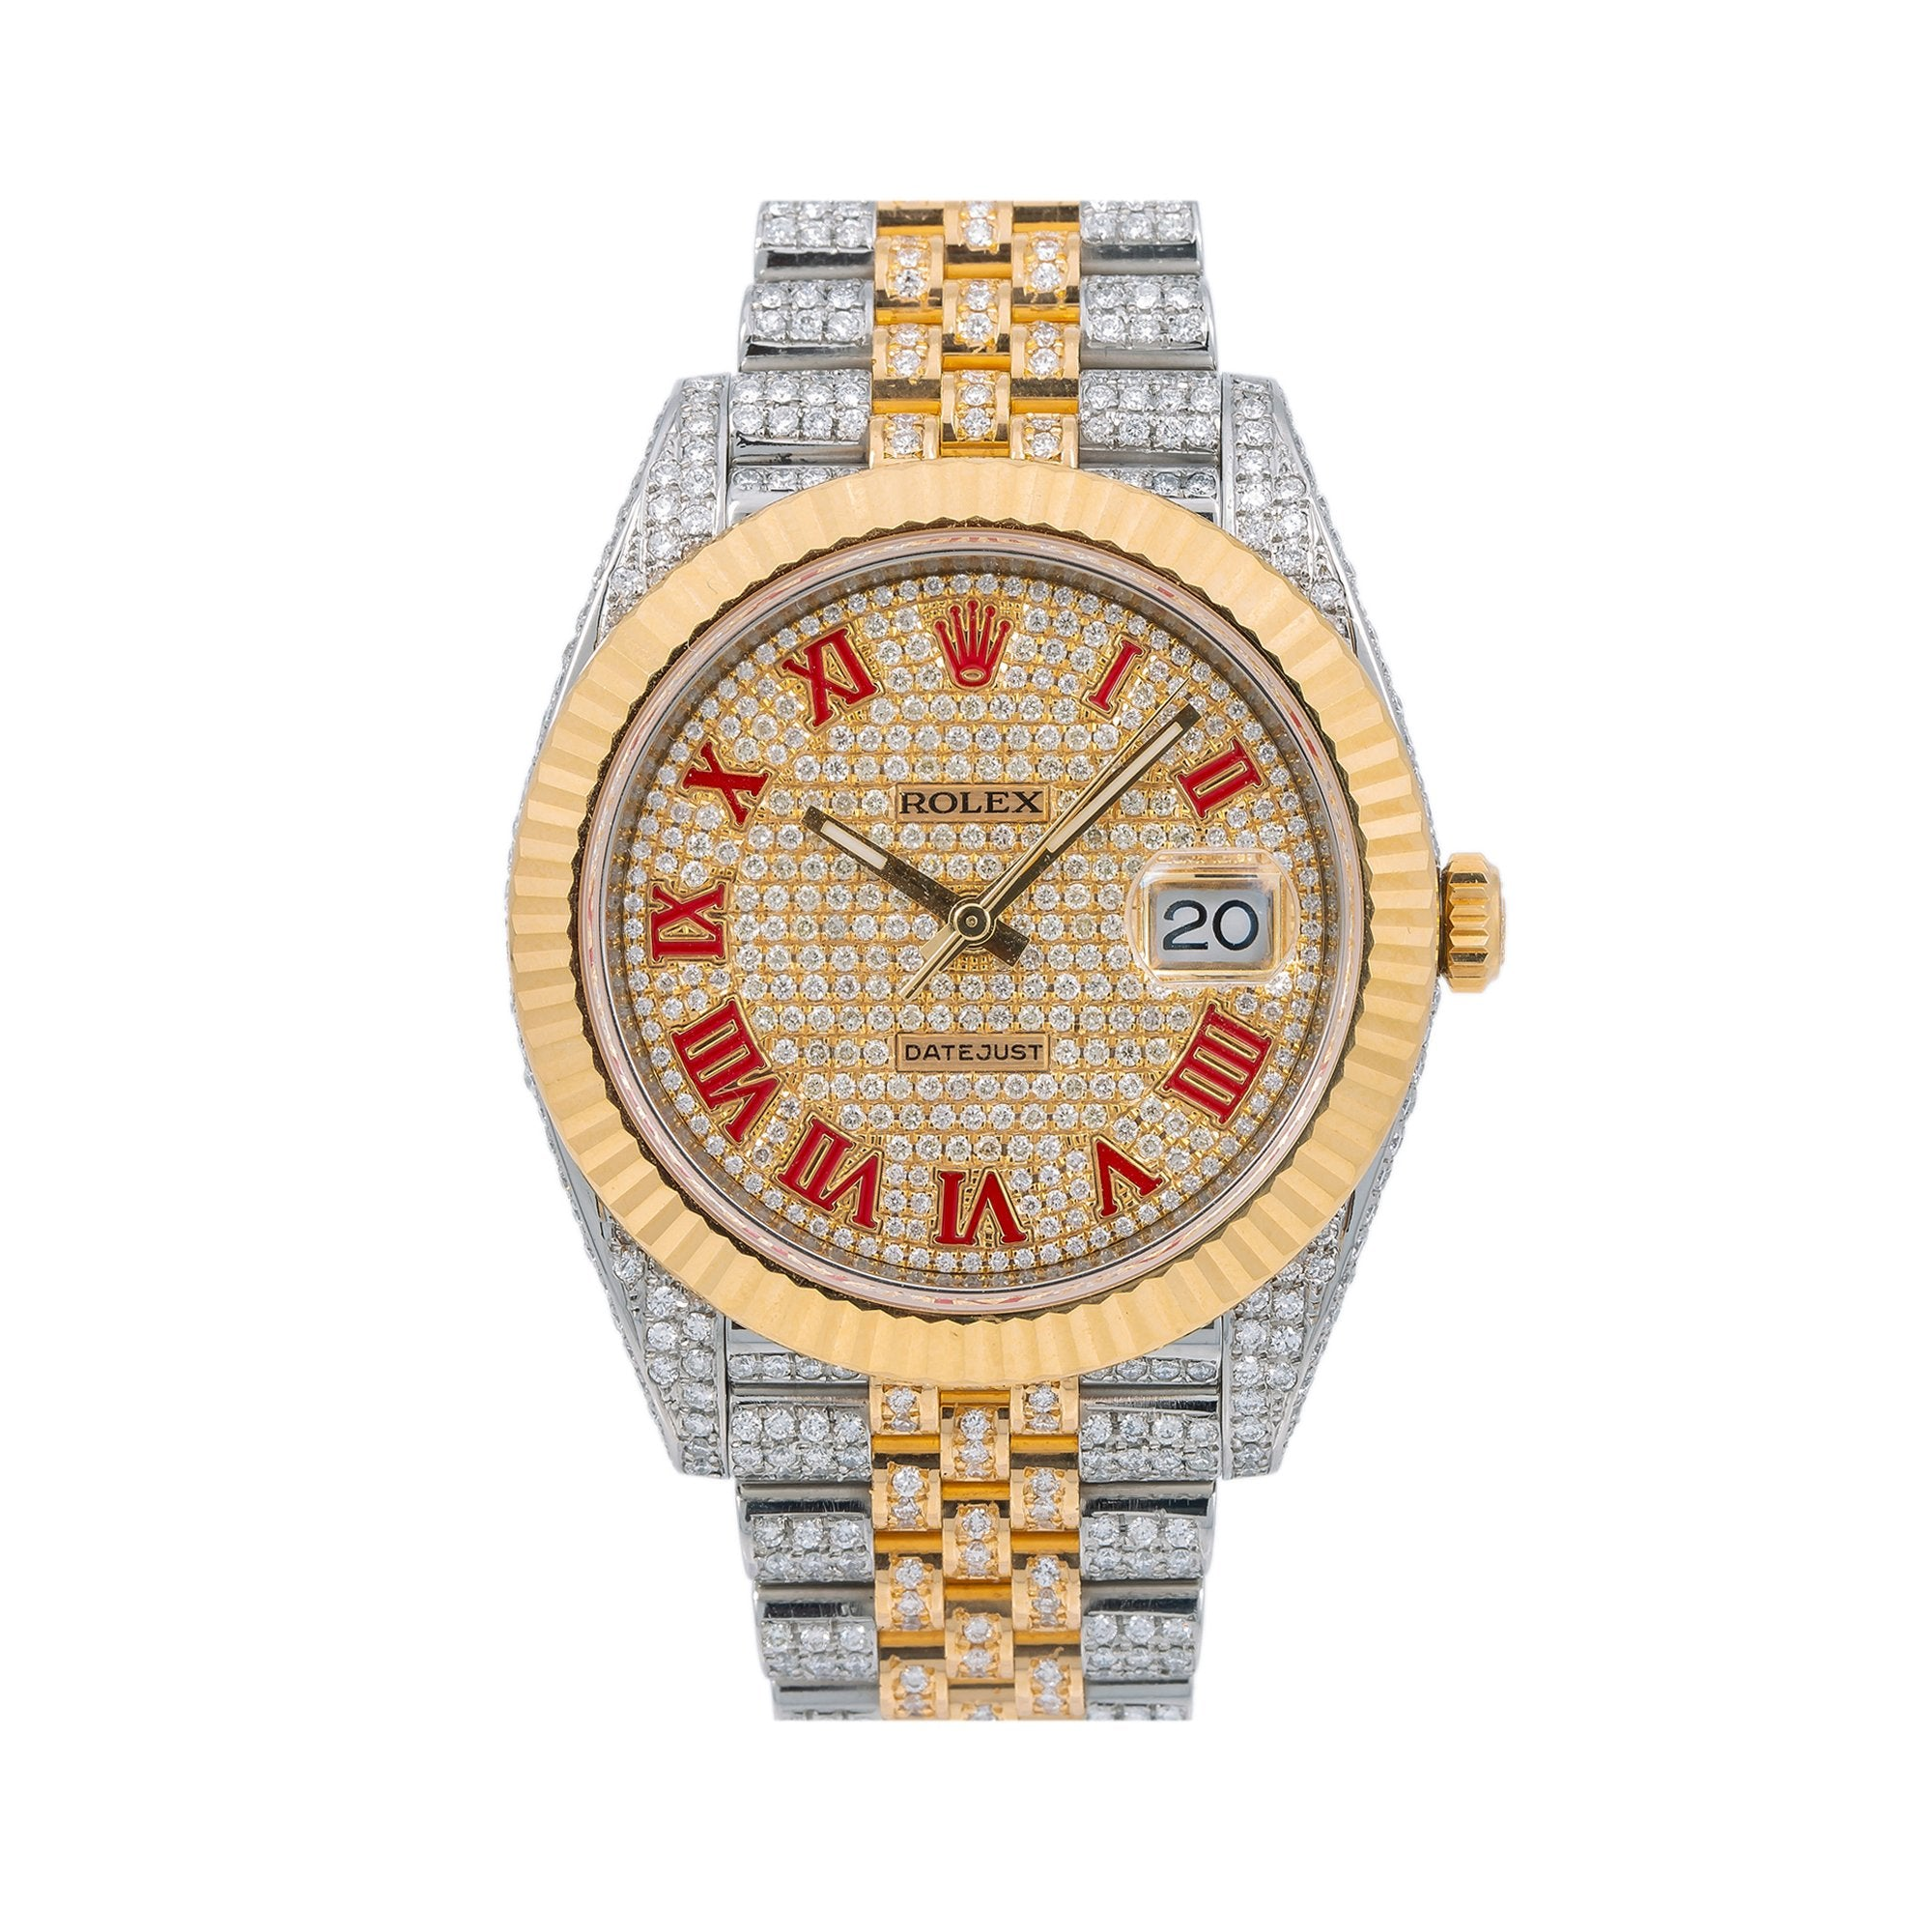 Rolex Datejust Diamond Watch, 126333 41mm, Champagne Diamond Dial With Two Tone Jubilee Bracelet